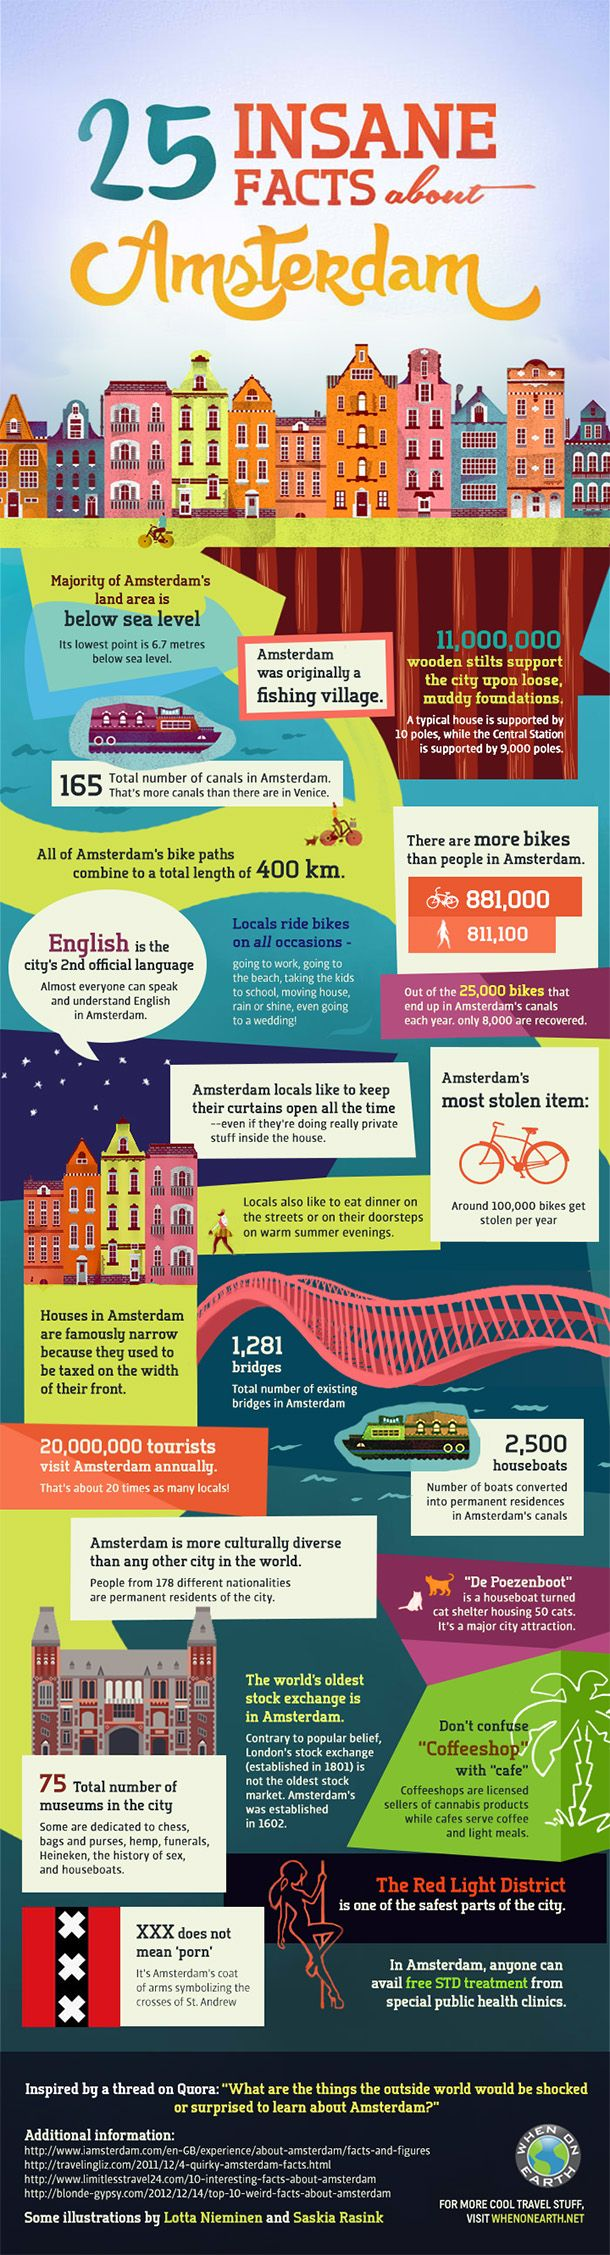 Crazy facts about Amsterdam http://goo.gl/ylQM2I